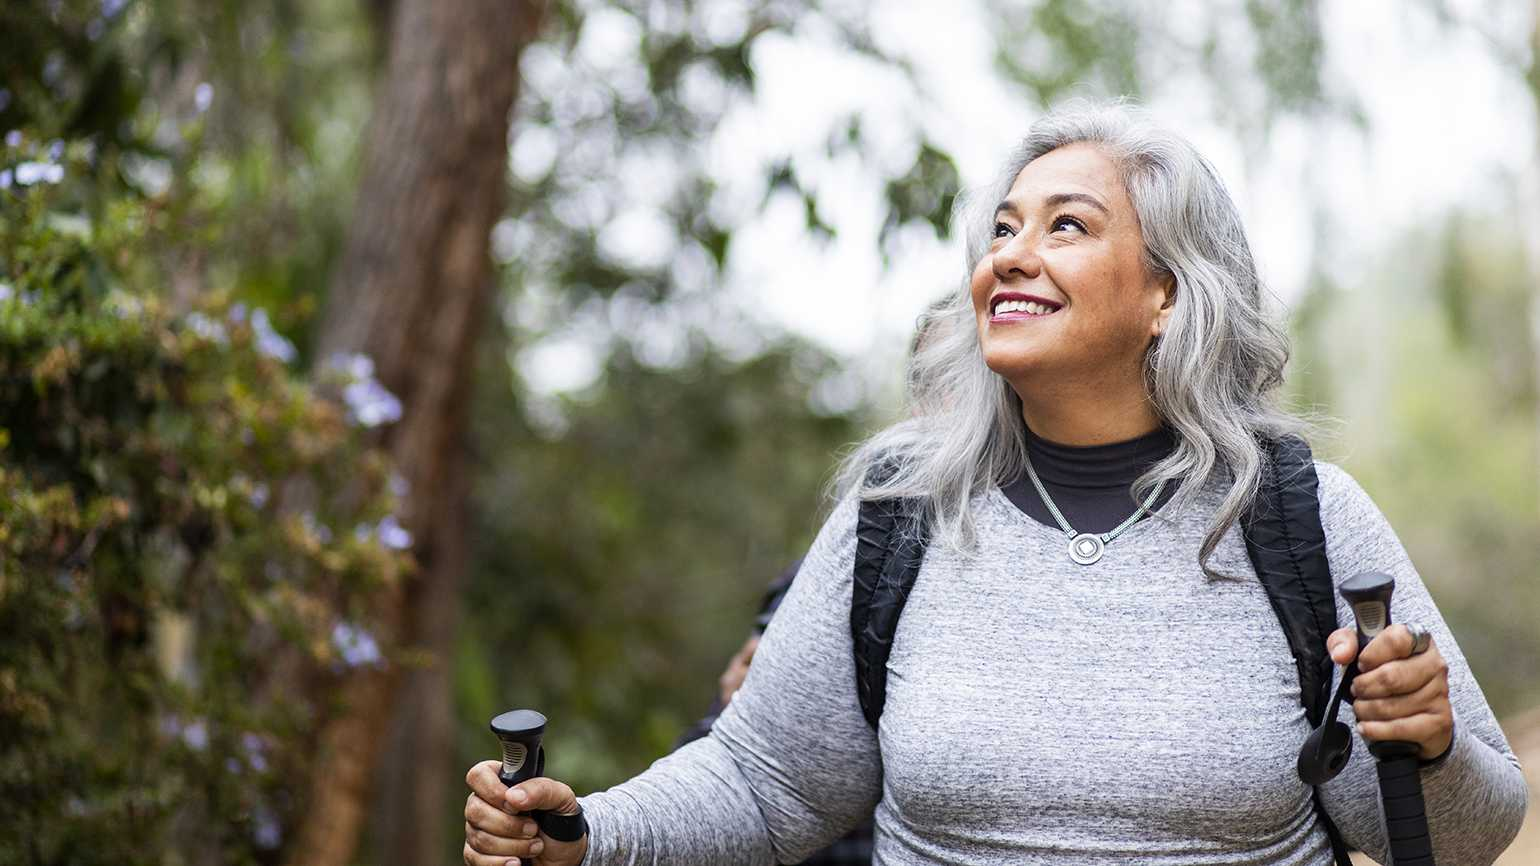 8 Things You Can Do to Lower Your Blood Pressure